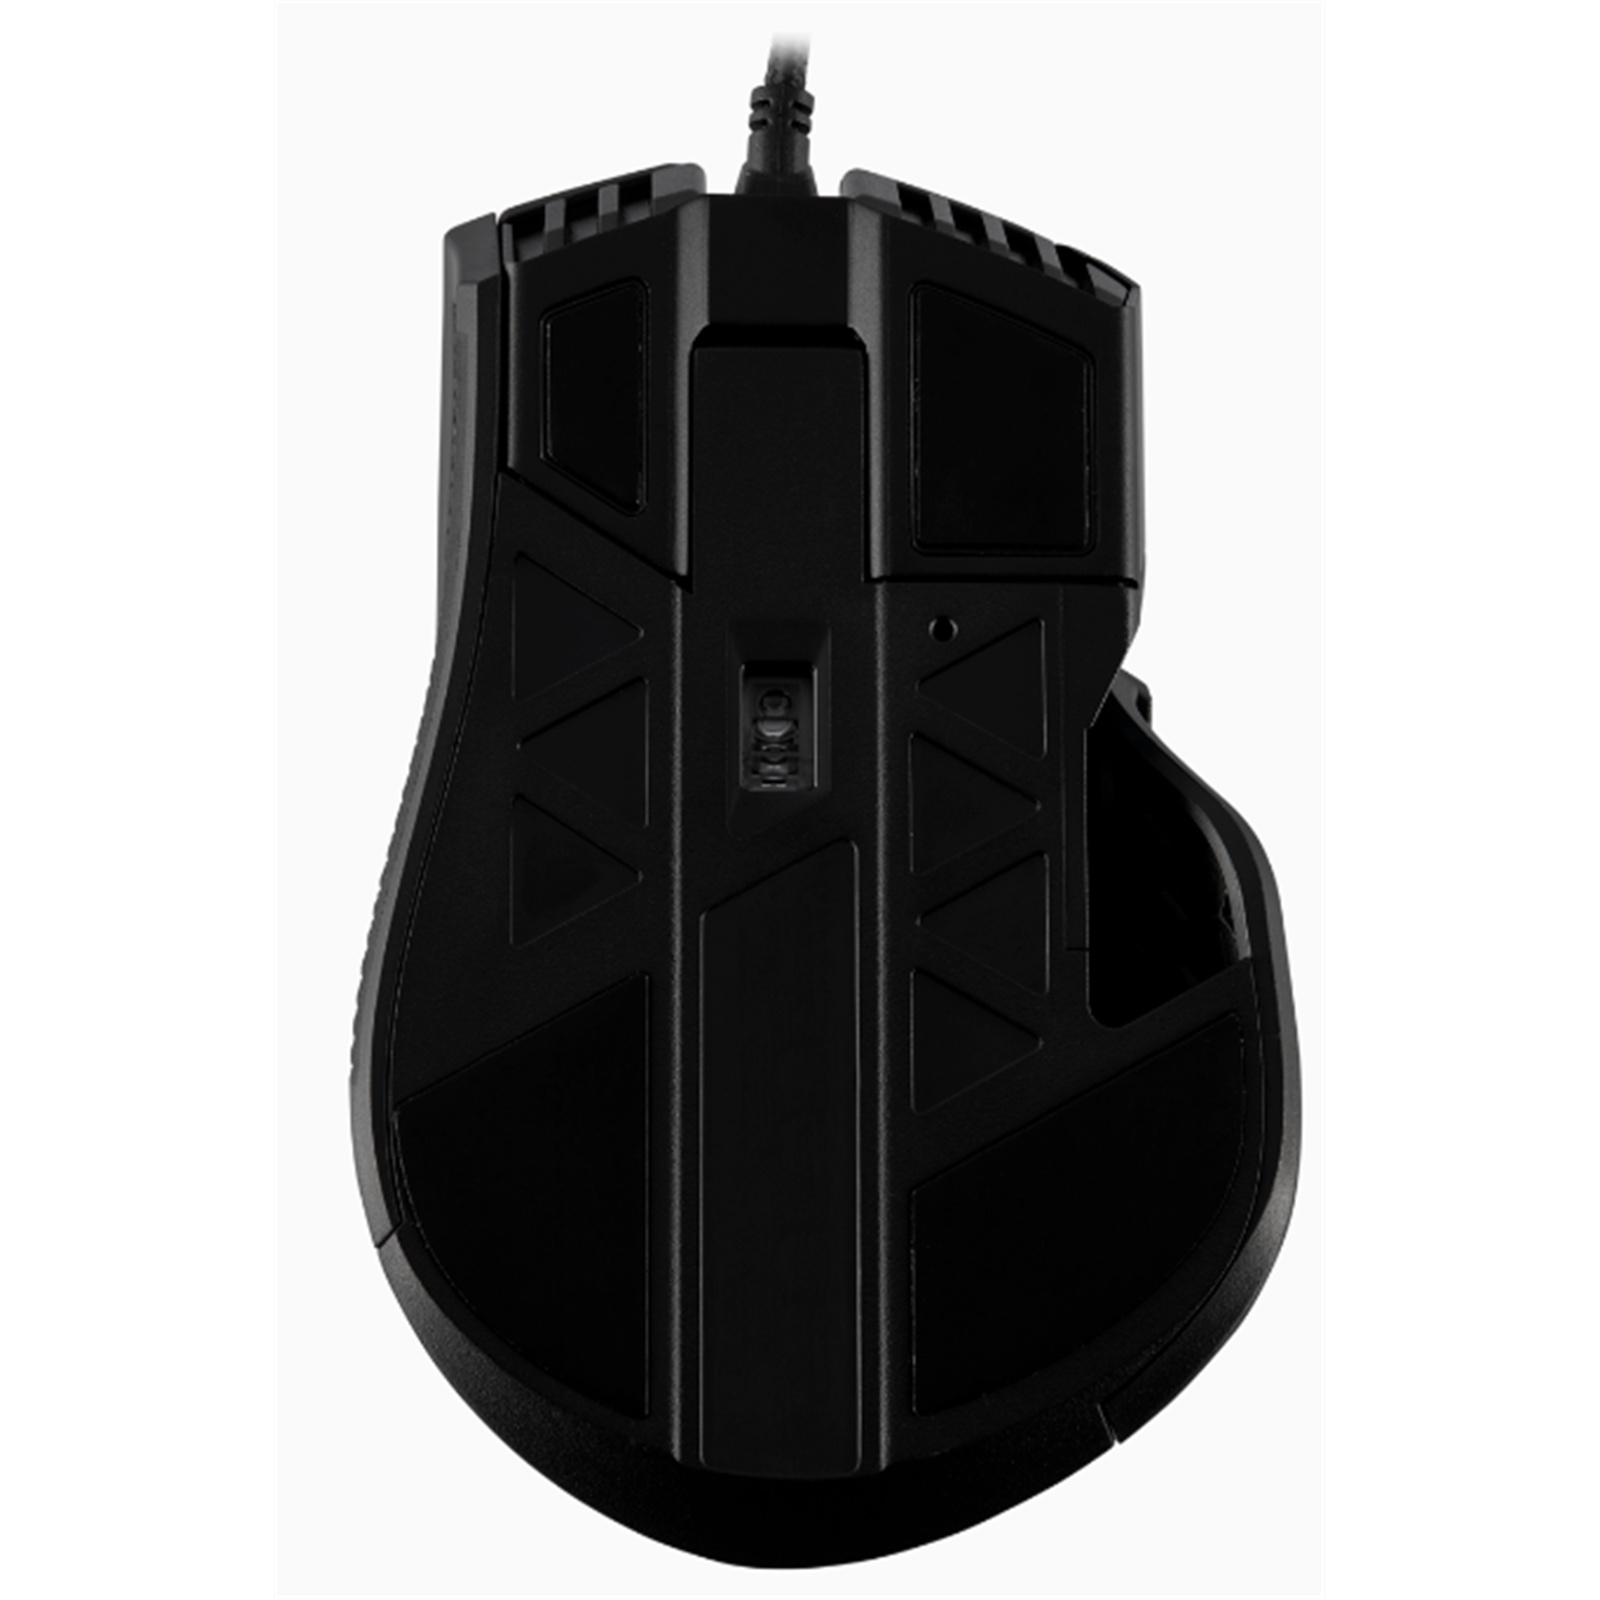 Buy the Corsair Ironclaw RGB FPS MOBA Gaming Mouse ( CH